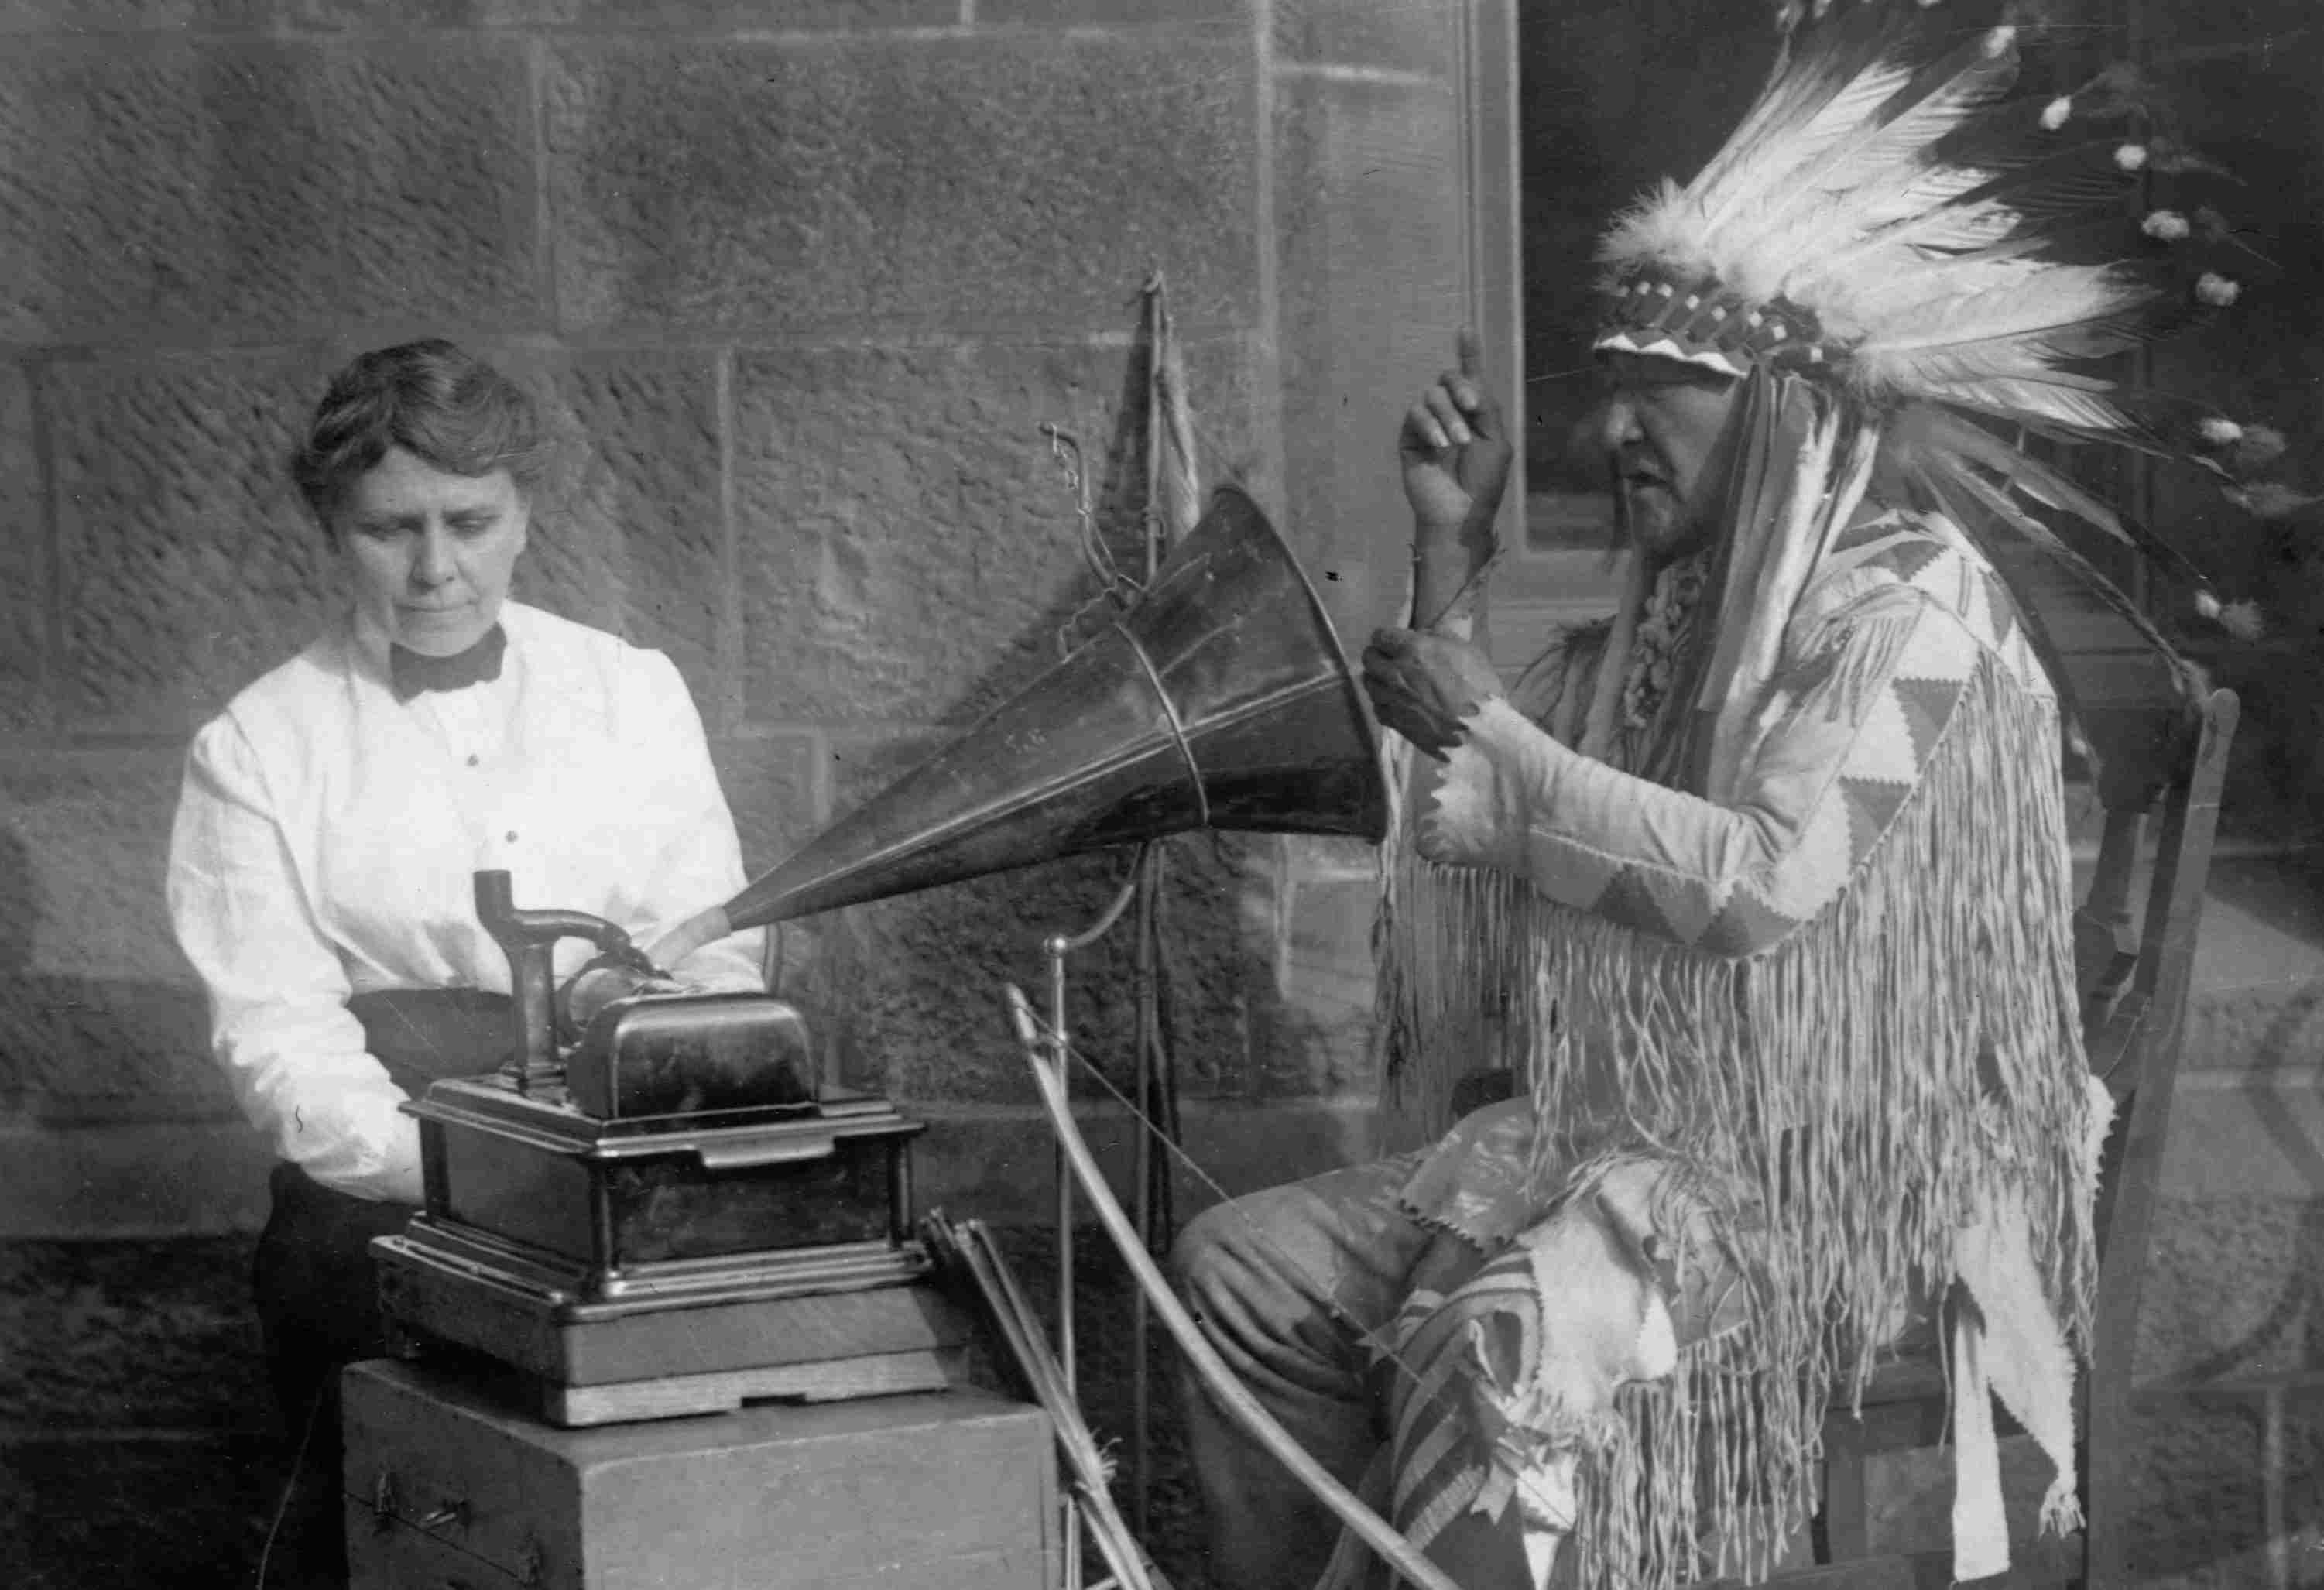 Photograph of Native American being recorded by a phonograph.